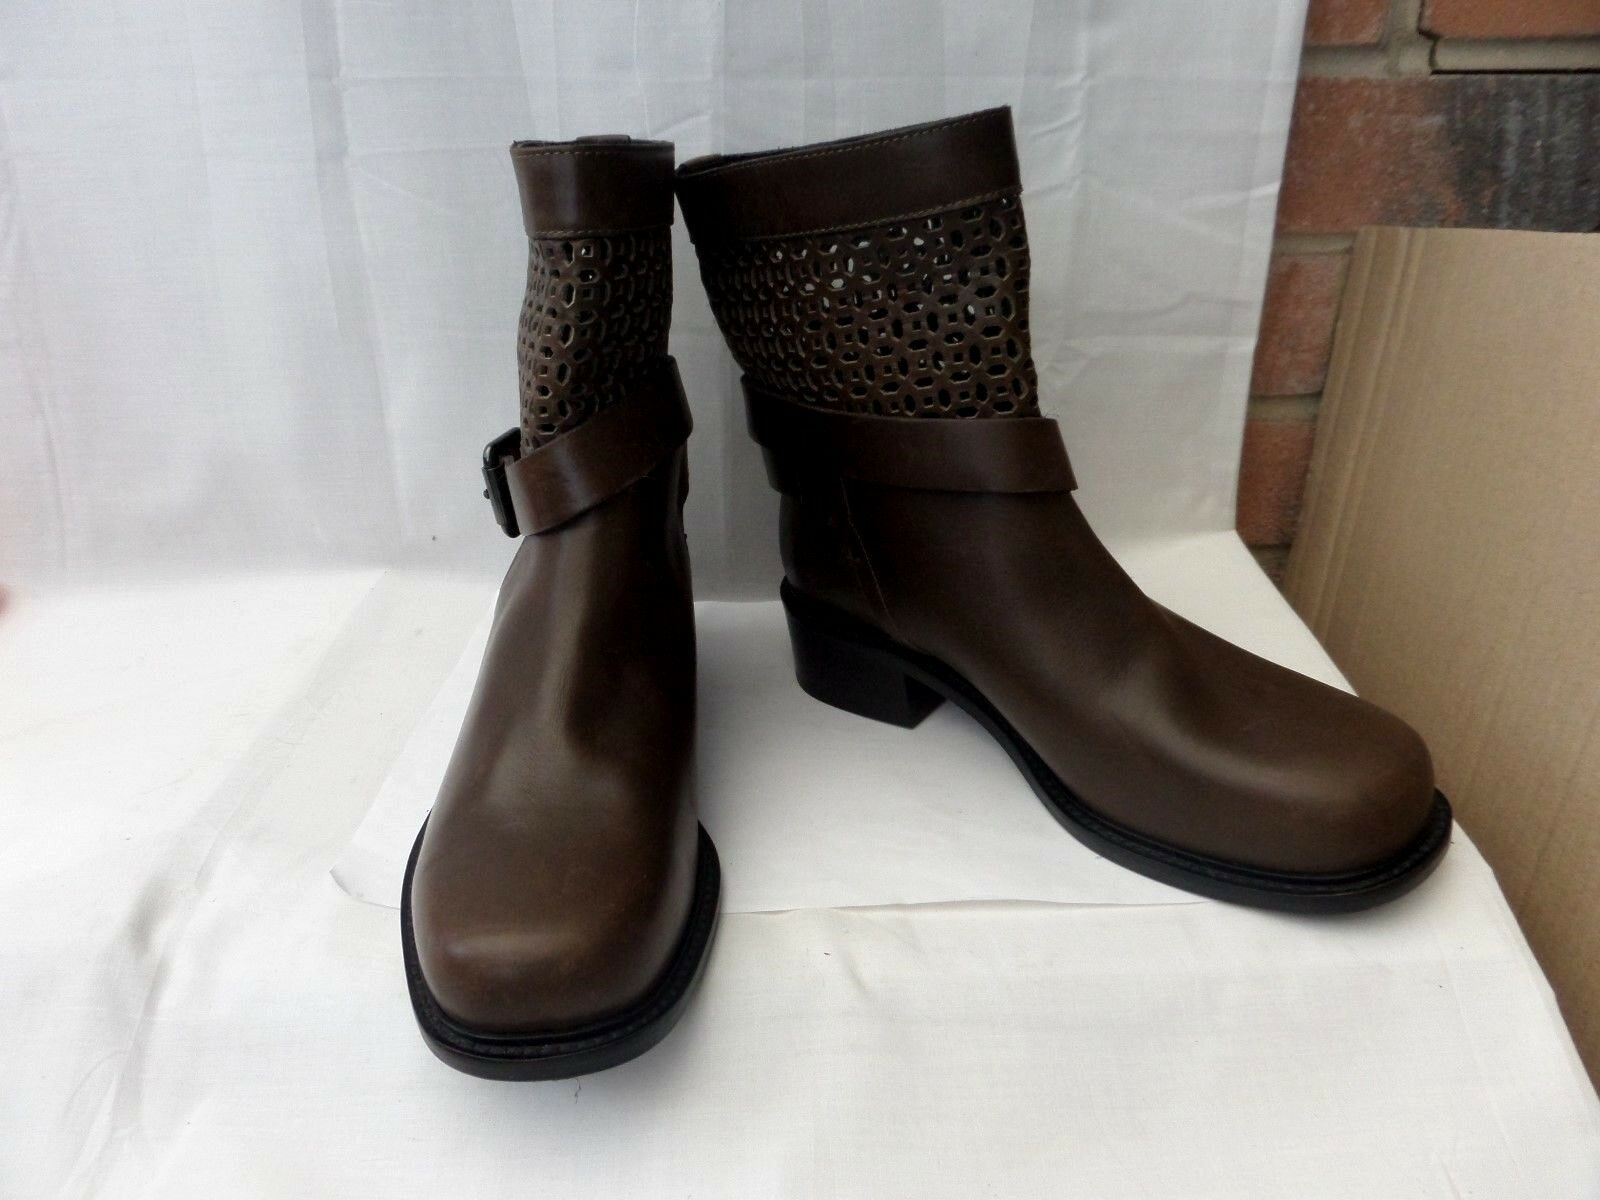 & OTHER STORIES   38 Khaki Brown leather ankle boots 1.5  heel VGC RRP